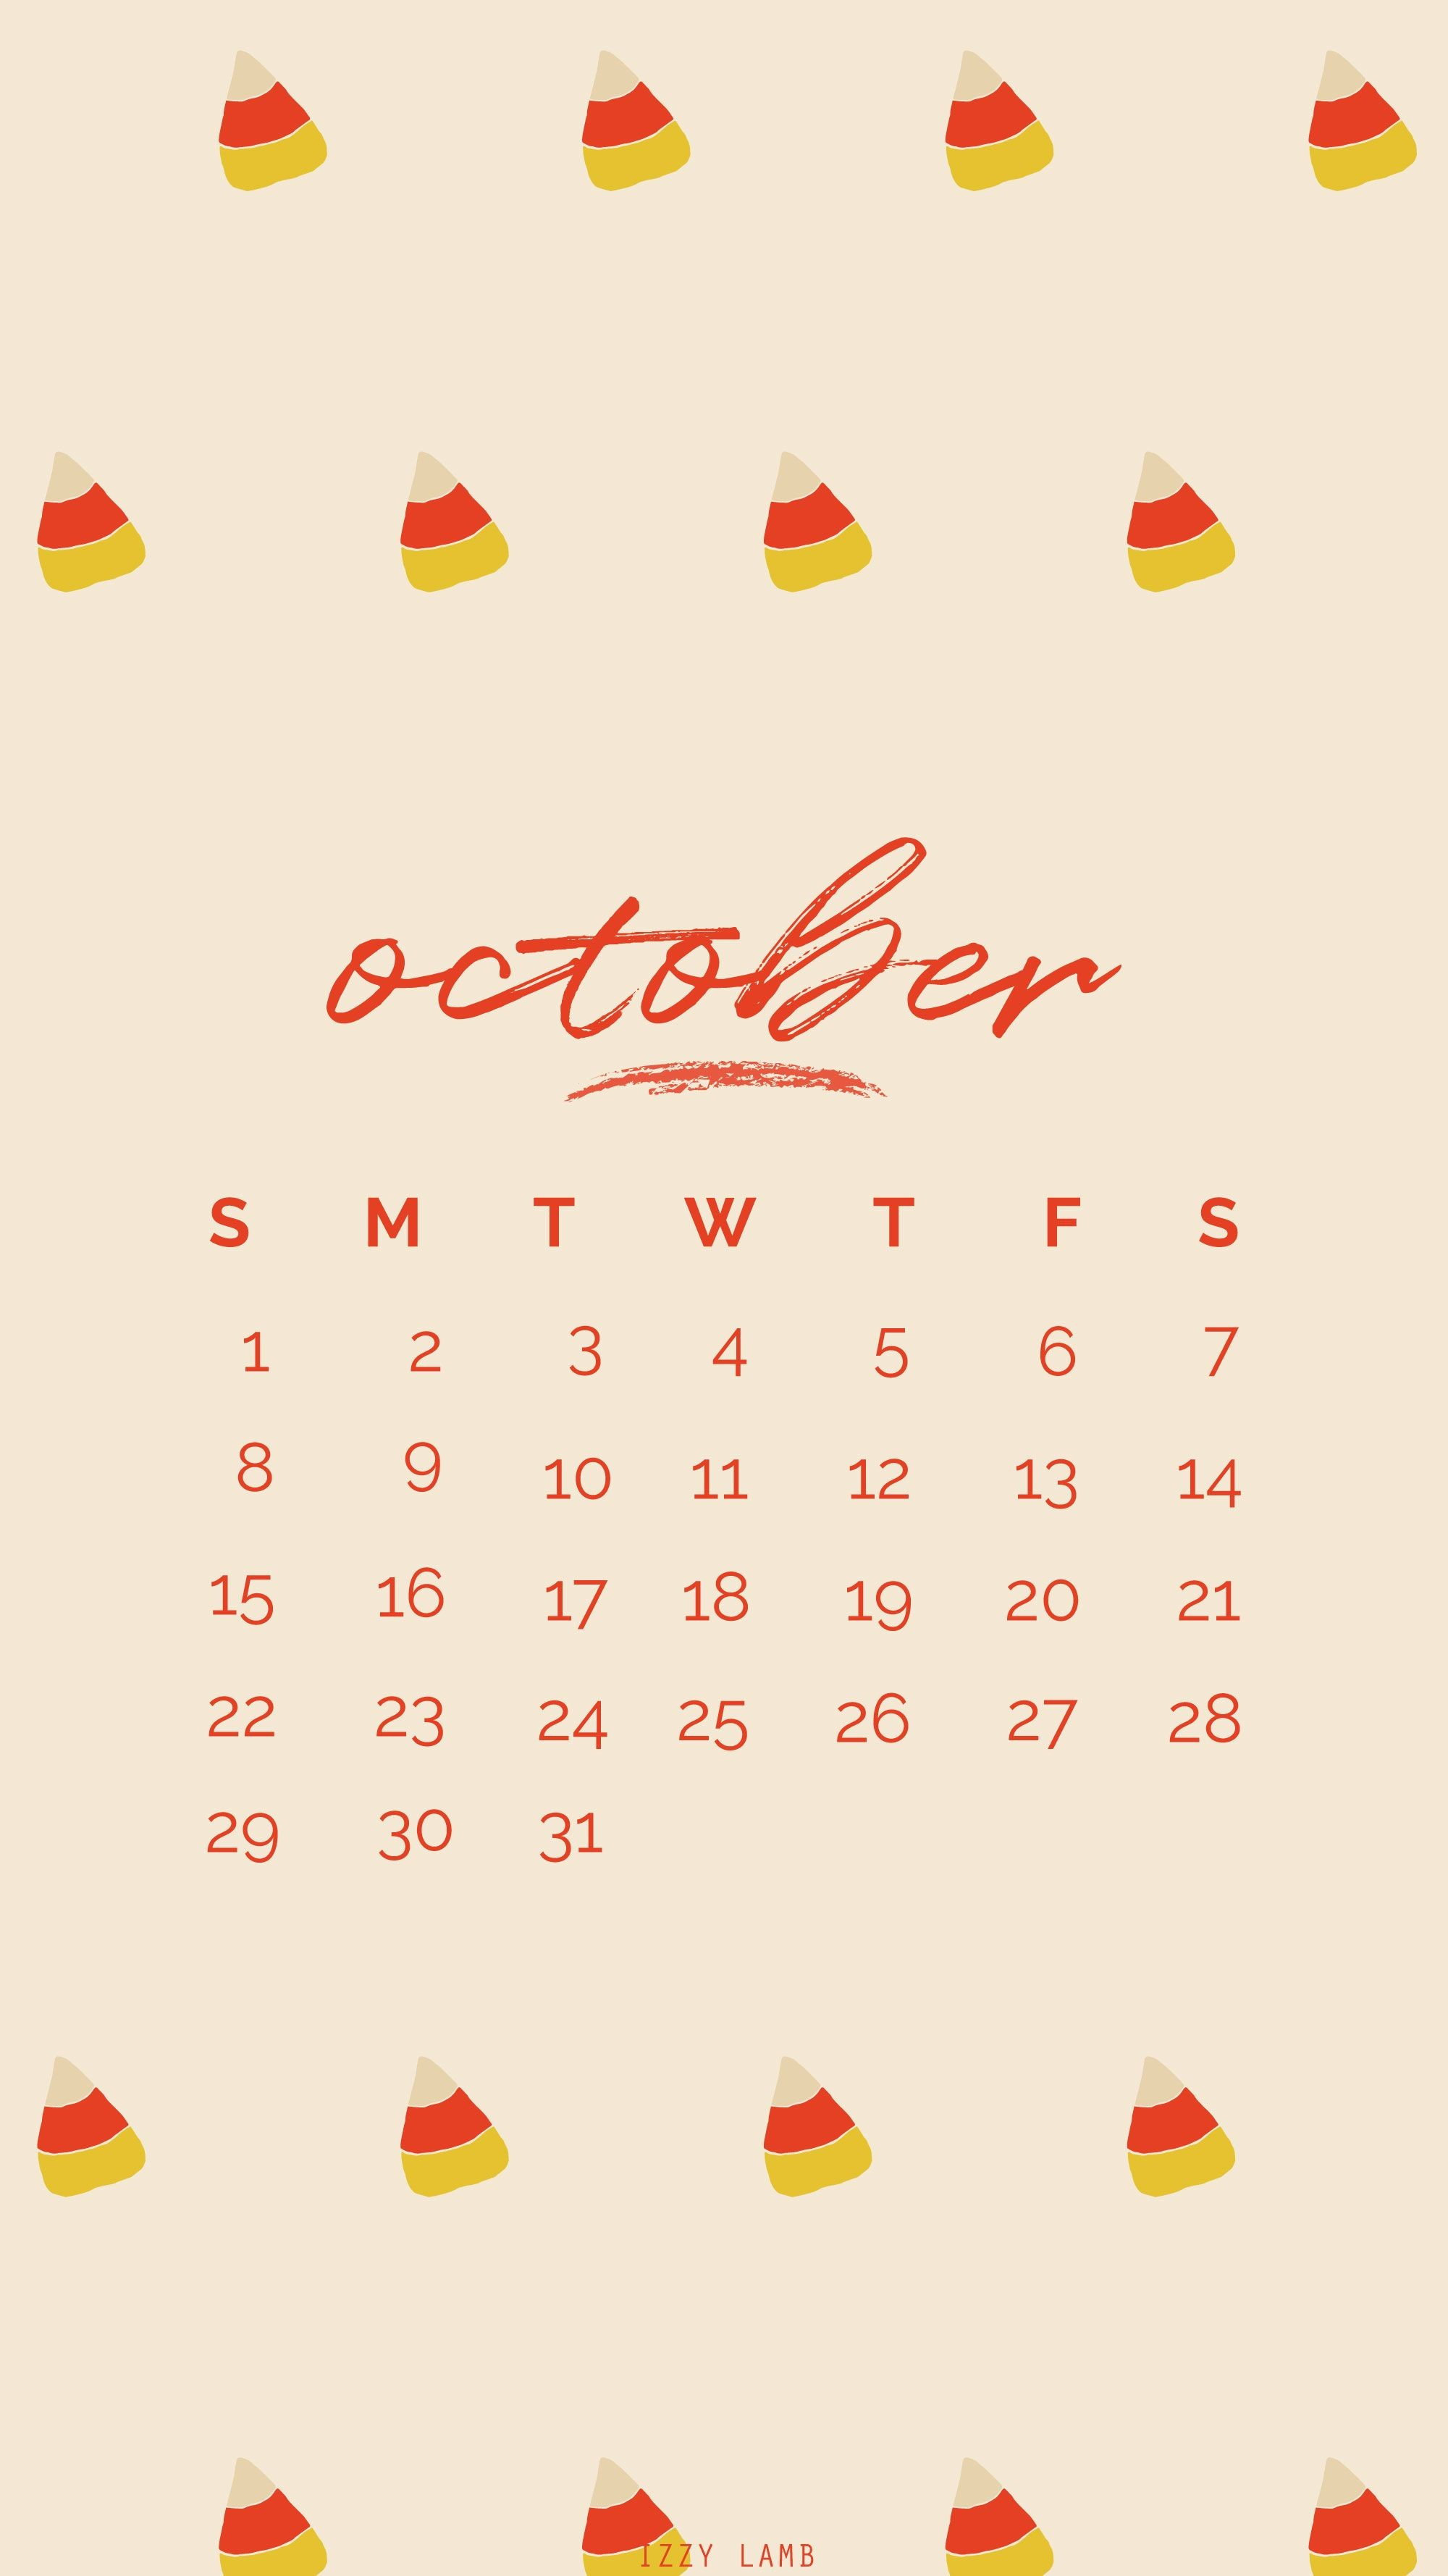 Calendario 2019 F1 Mejores Y Más Novedosos October Calender Wallpaper iPhone October Octoberwallpaper Of Calendario 2019 F1 Más Arriba-a-fecha Mercedes Amg Gls 63 My 2019 7 10